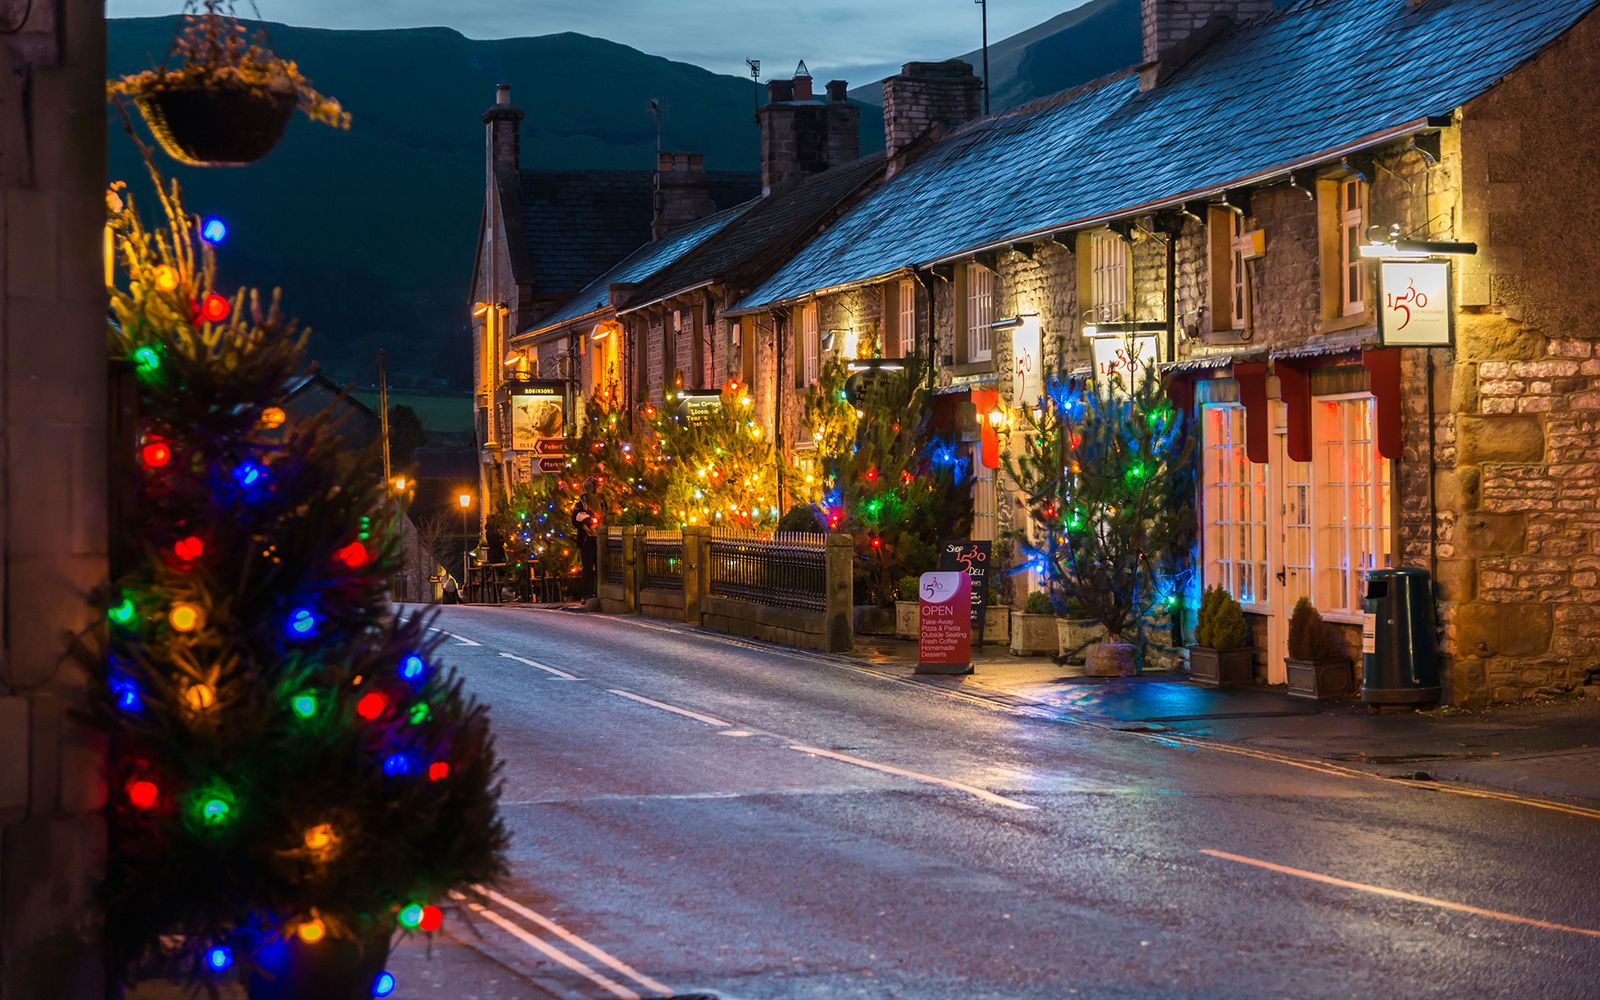 The Best Places to Spend Christmas | Peak district